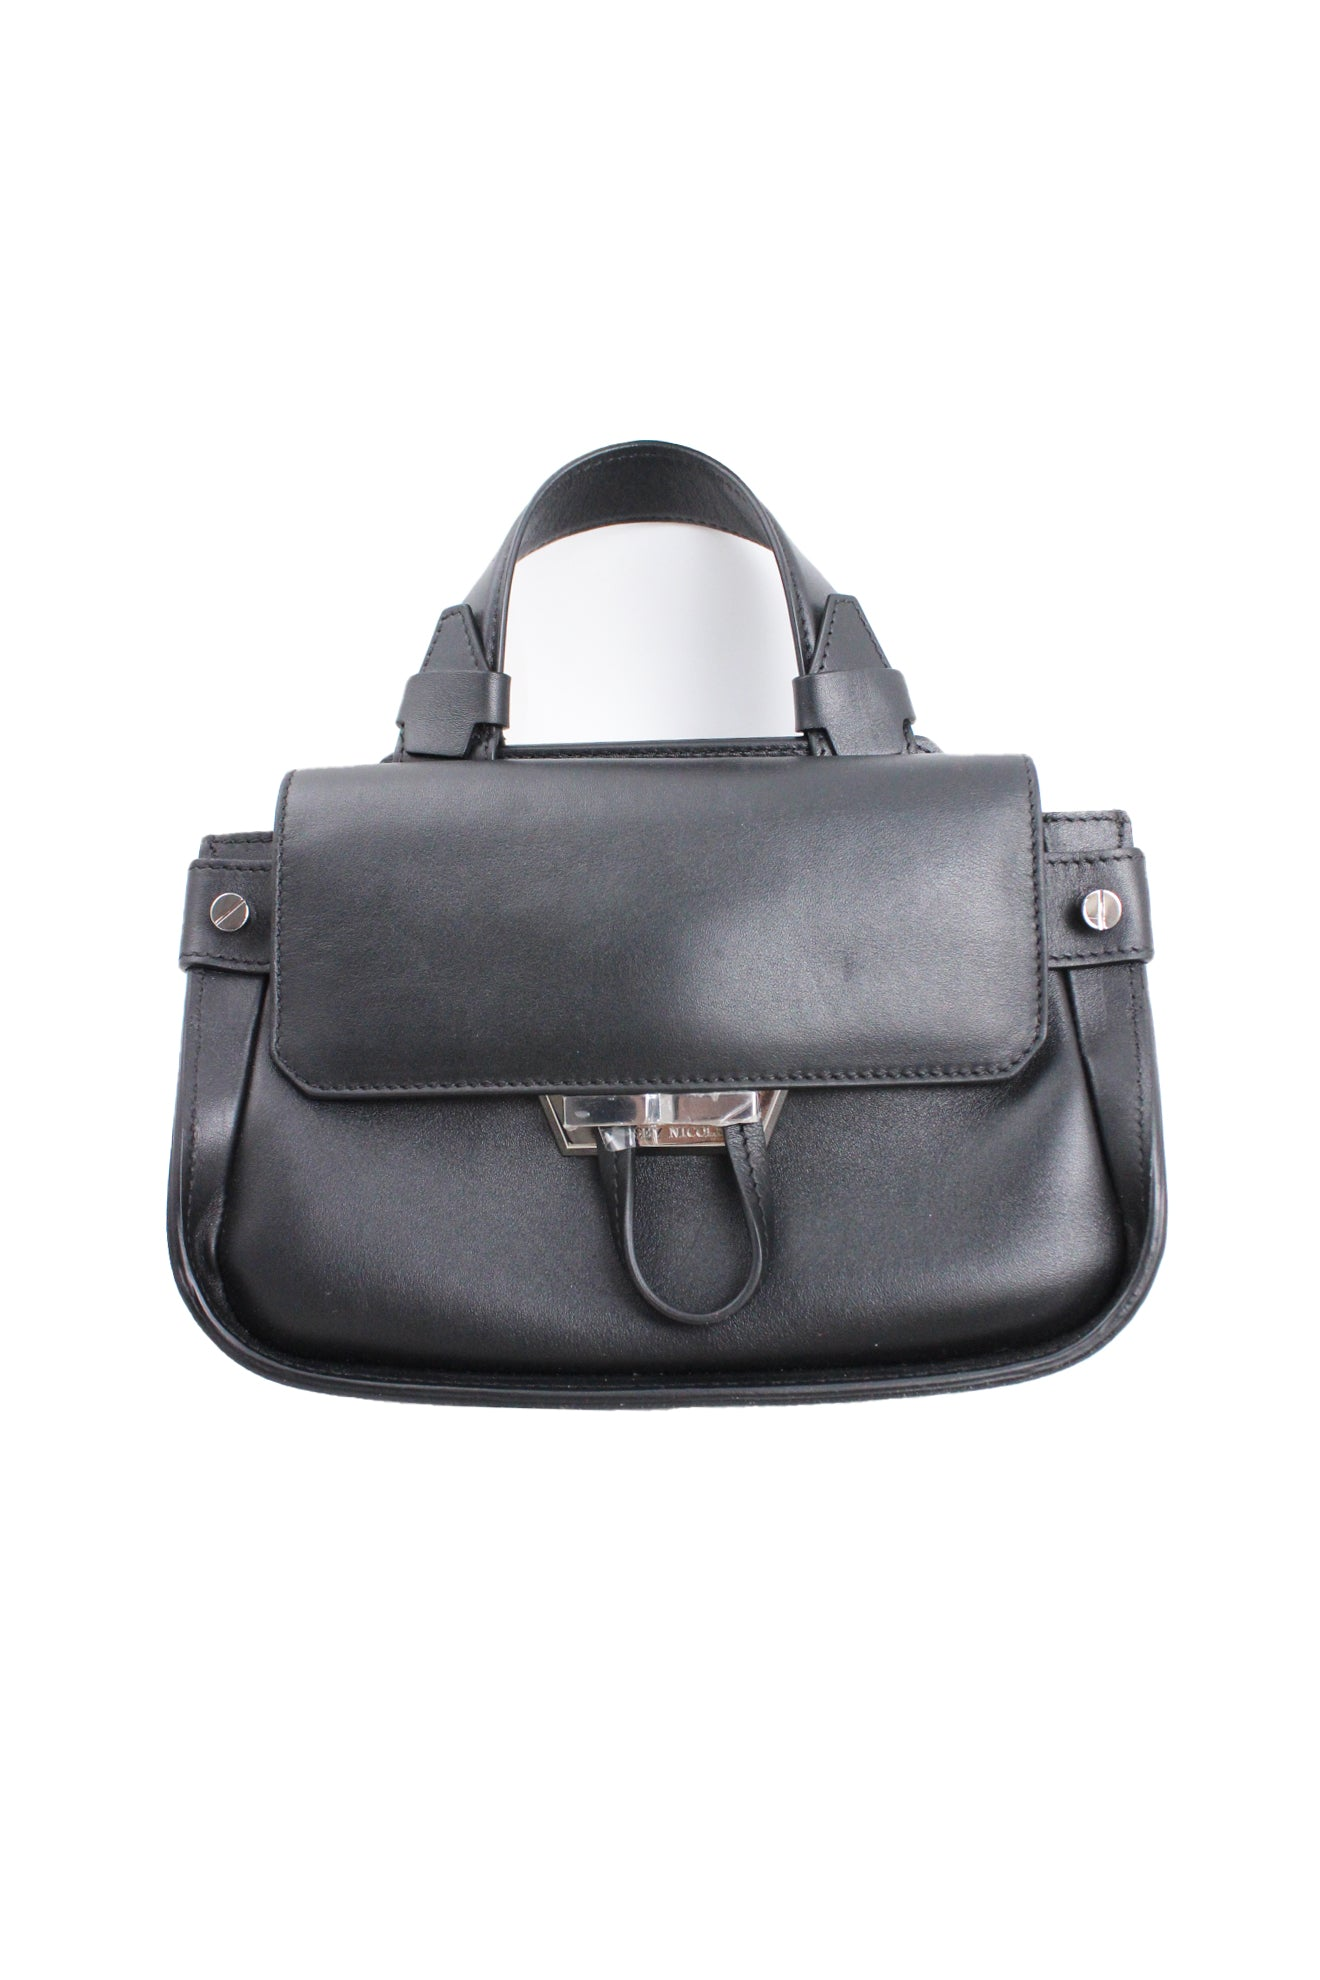 lindsey nicole black hand bag. features magnetic closures, zipper closures at the interior and exterior pockets. silver tone metal details. authenticity card and extra strap included.